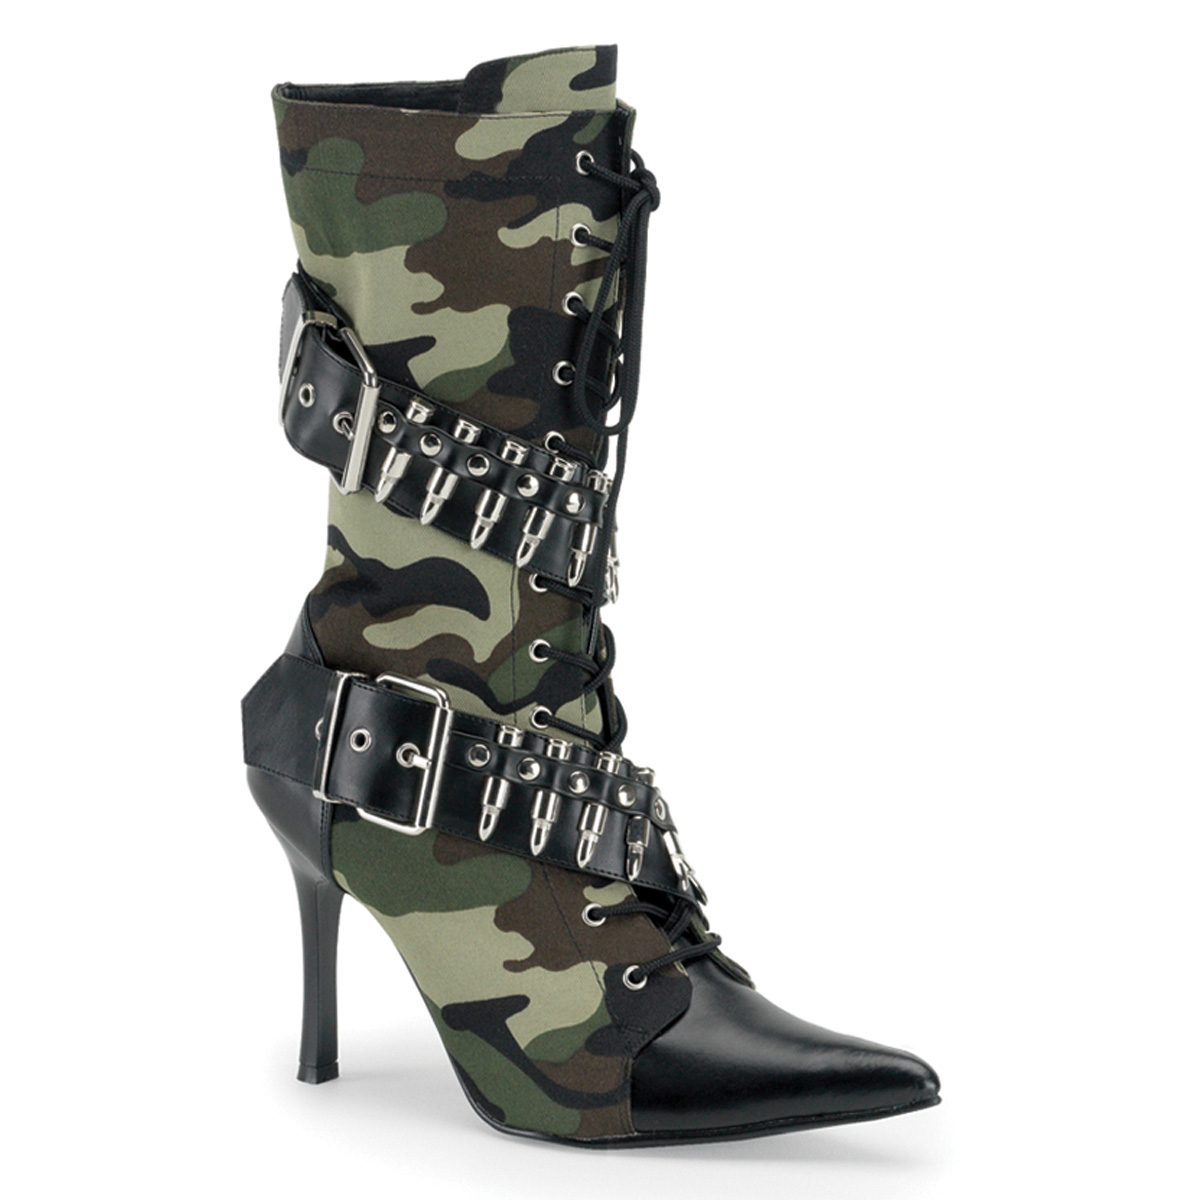 Green Camoflage Bullet Military Boot, 3 3/4